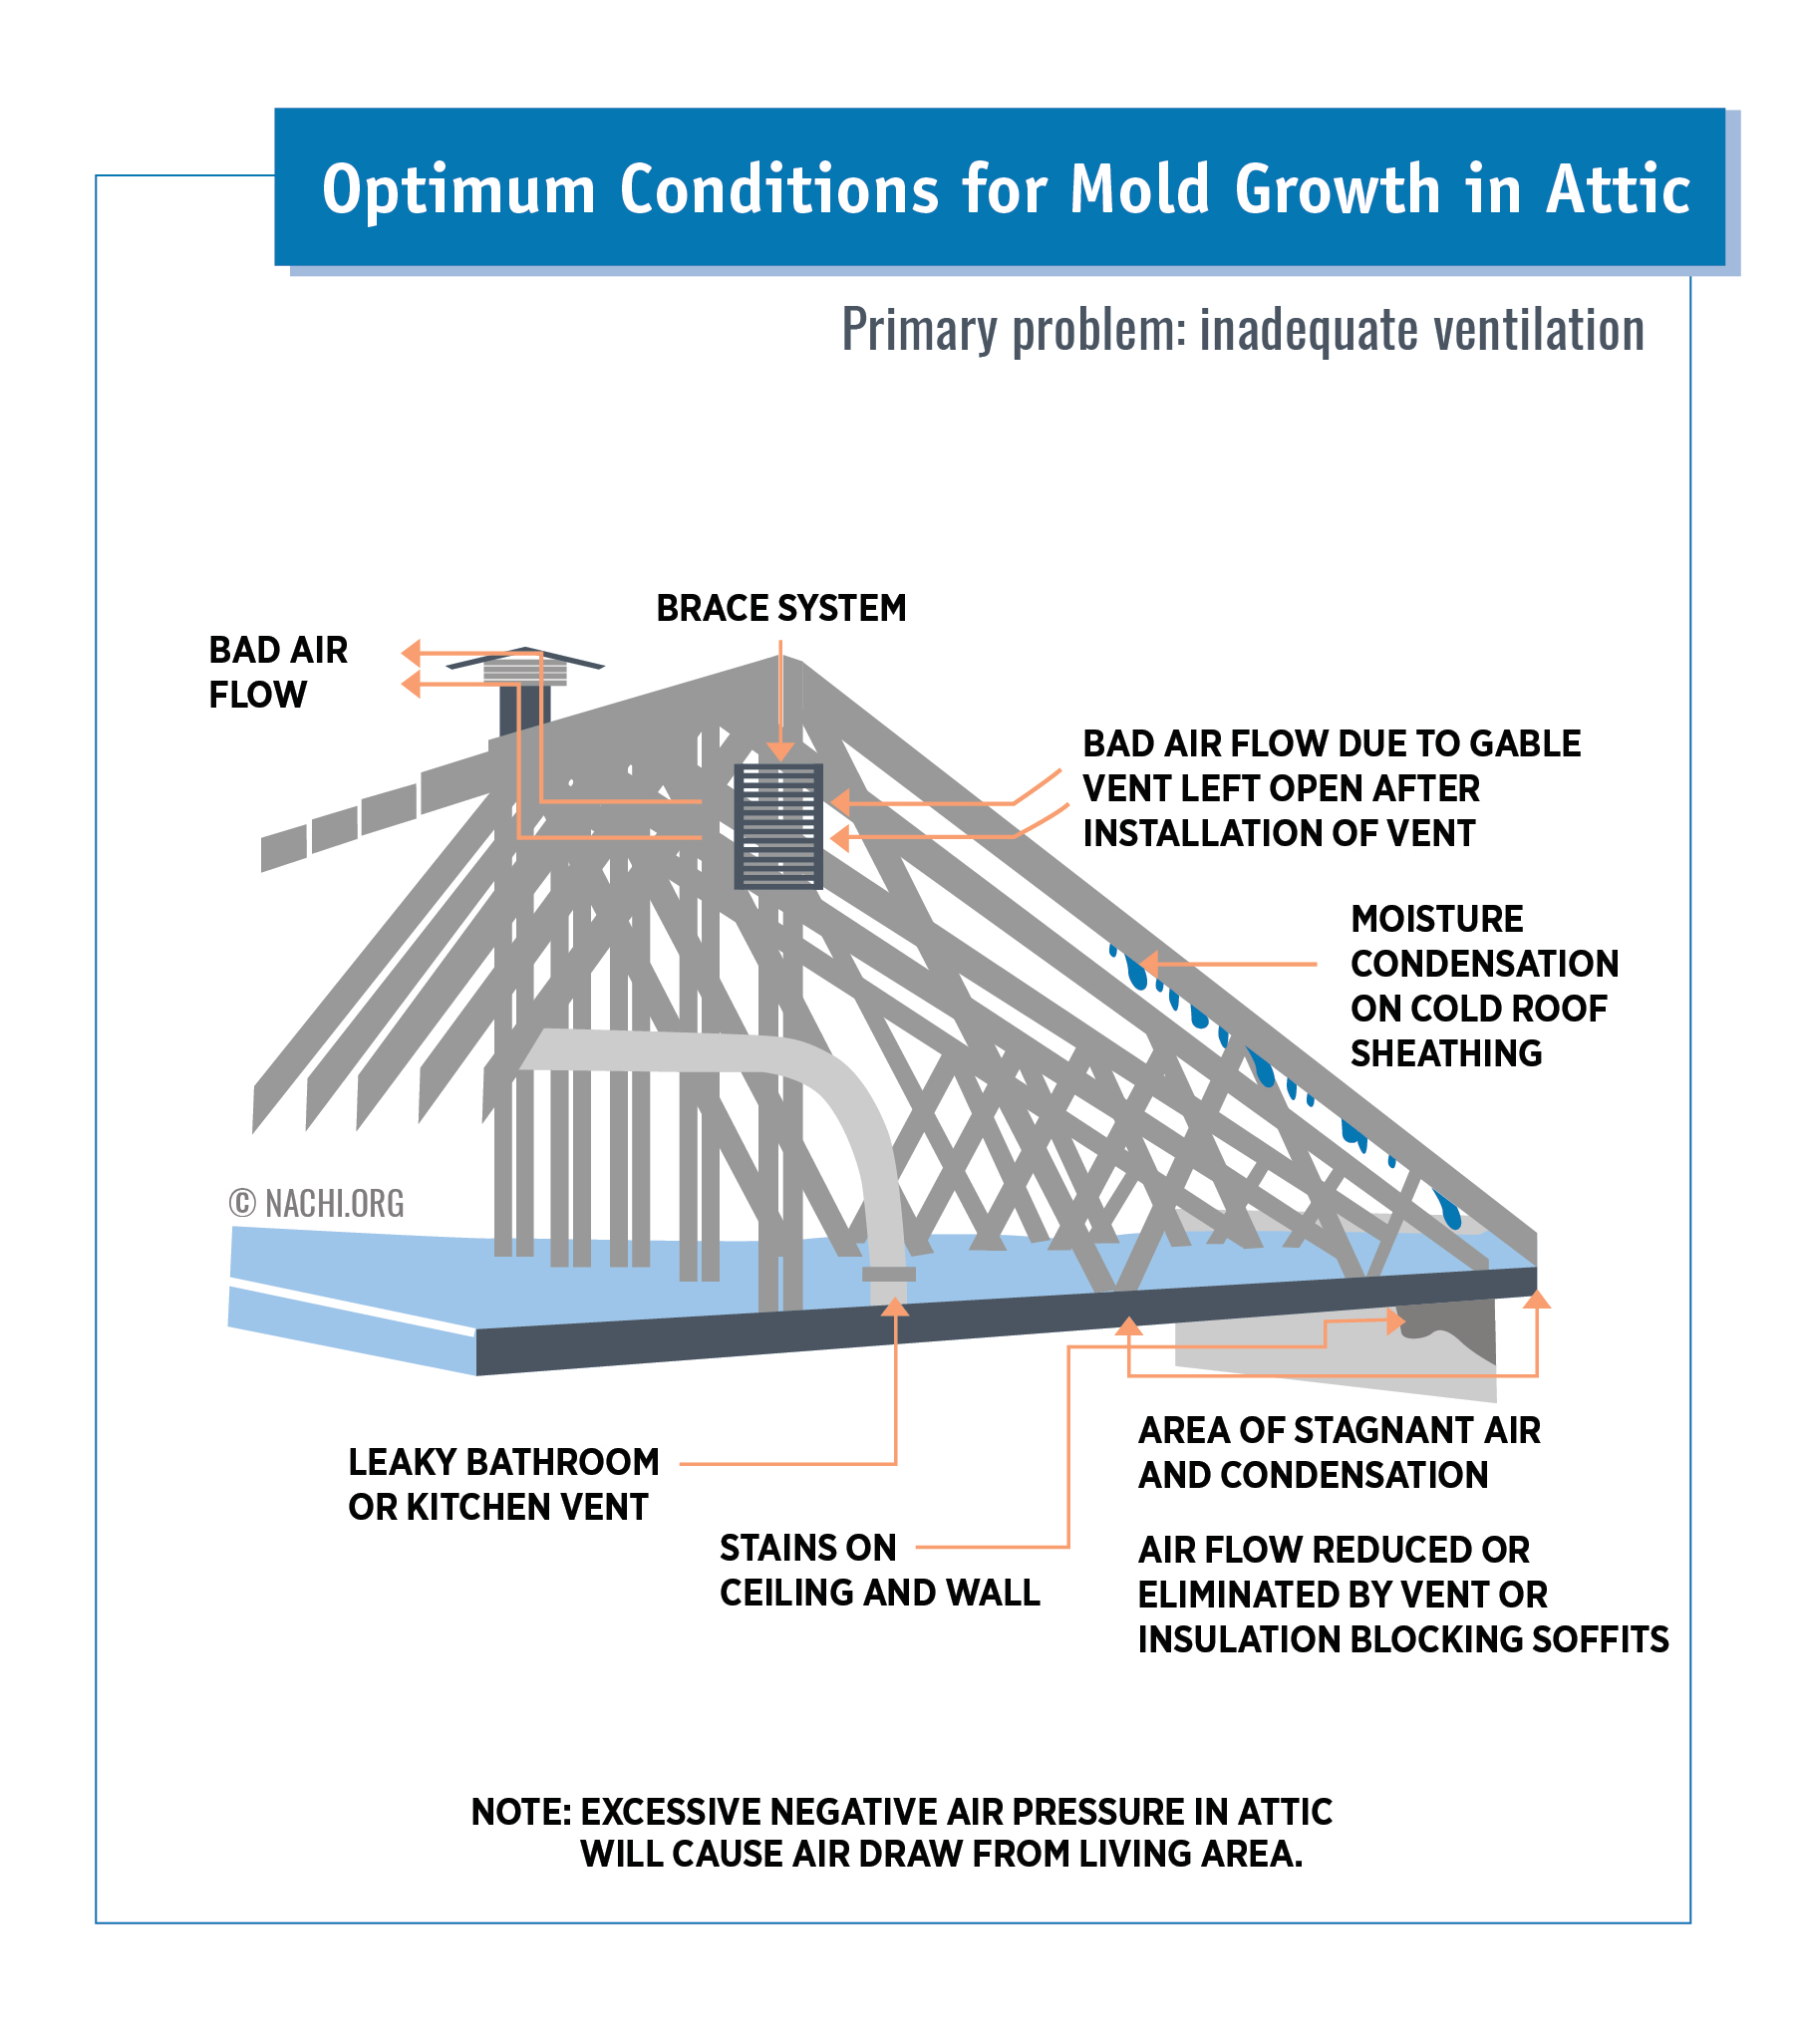 Optimum Conditions for Mold Growth in Attic.